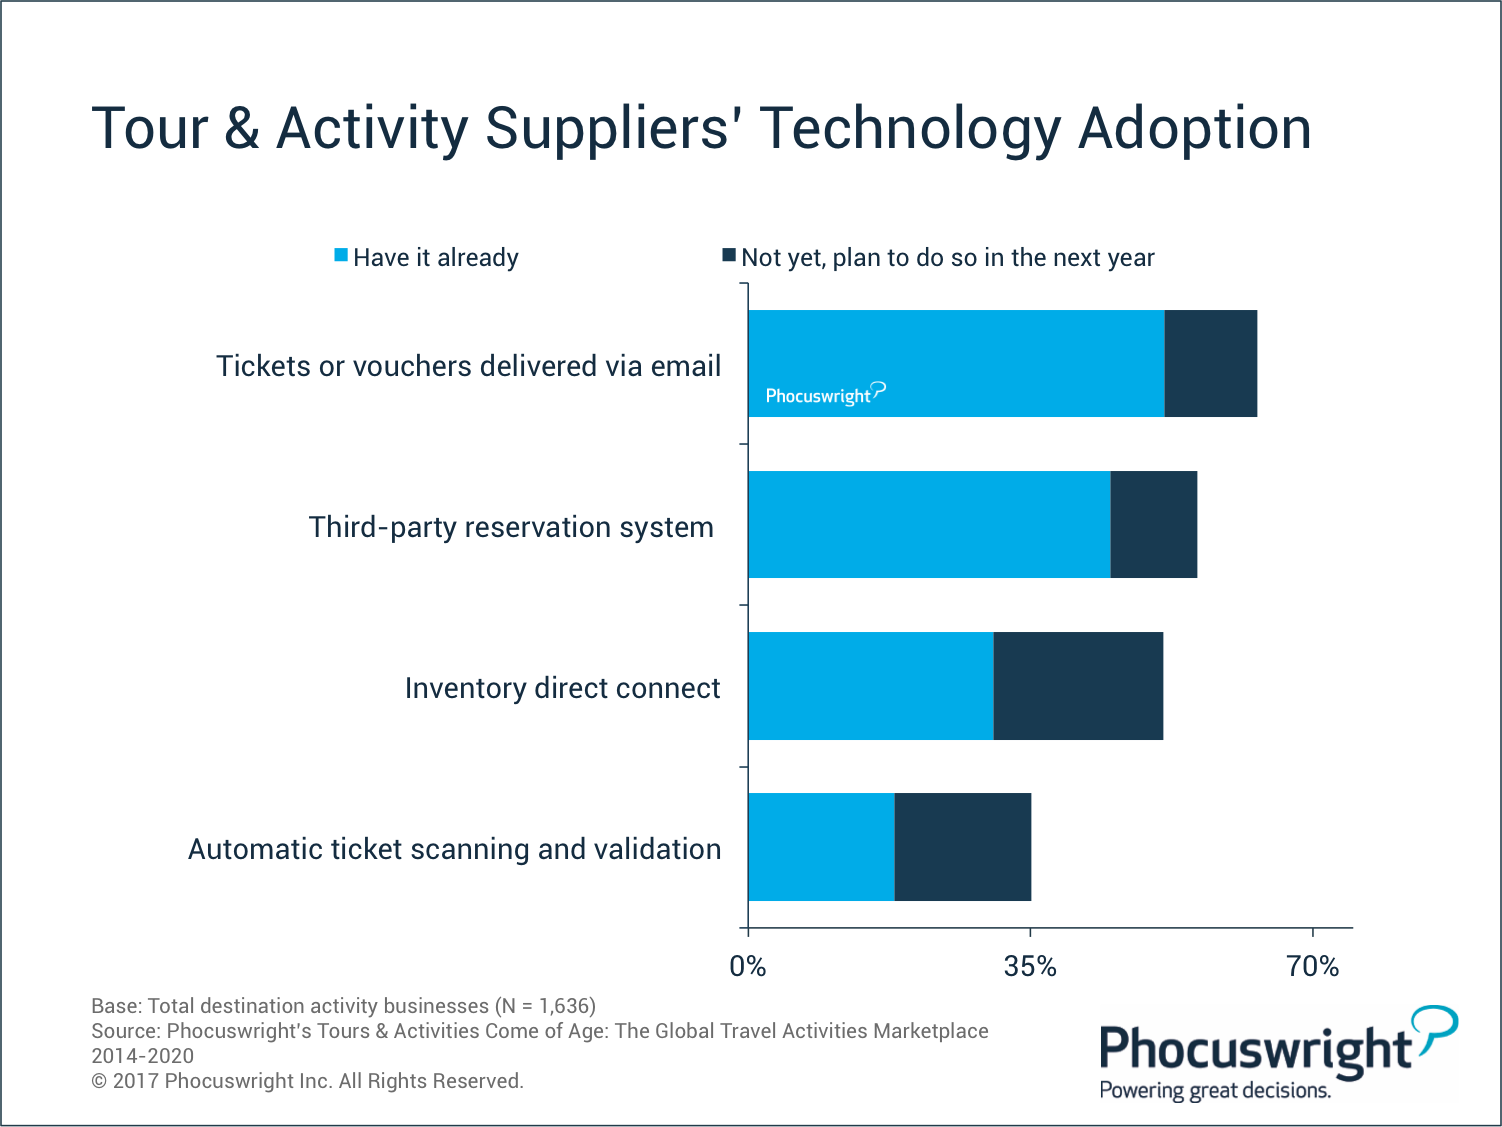 Tour Activities Suppliers Technology Adoptions Phocuswright